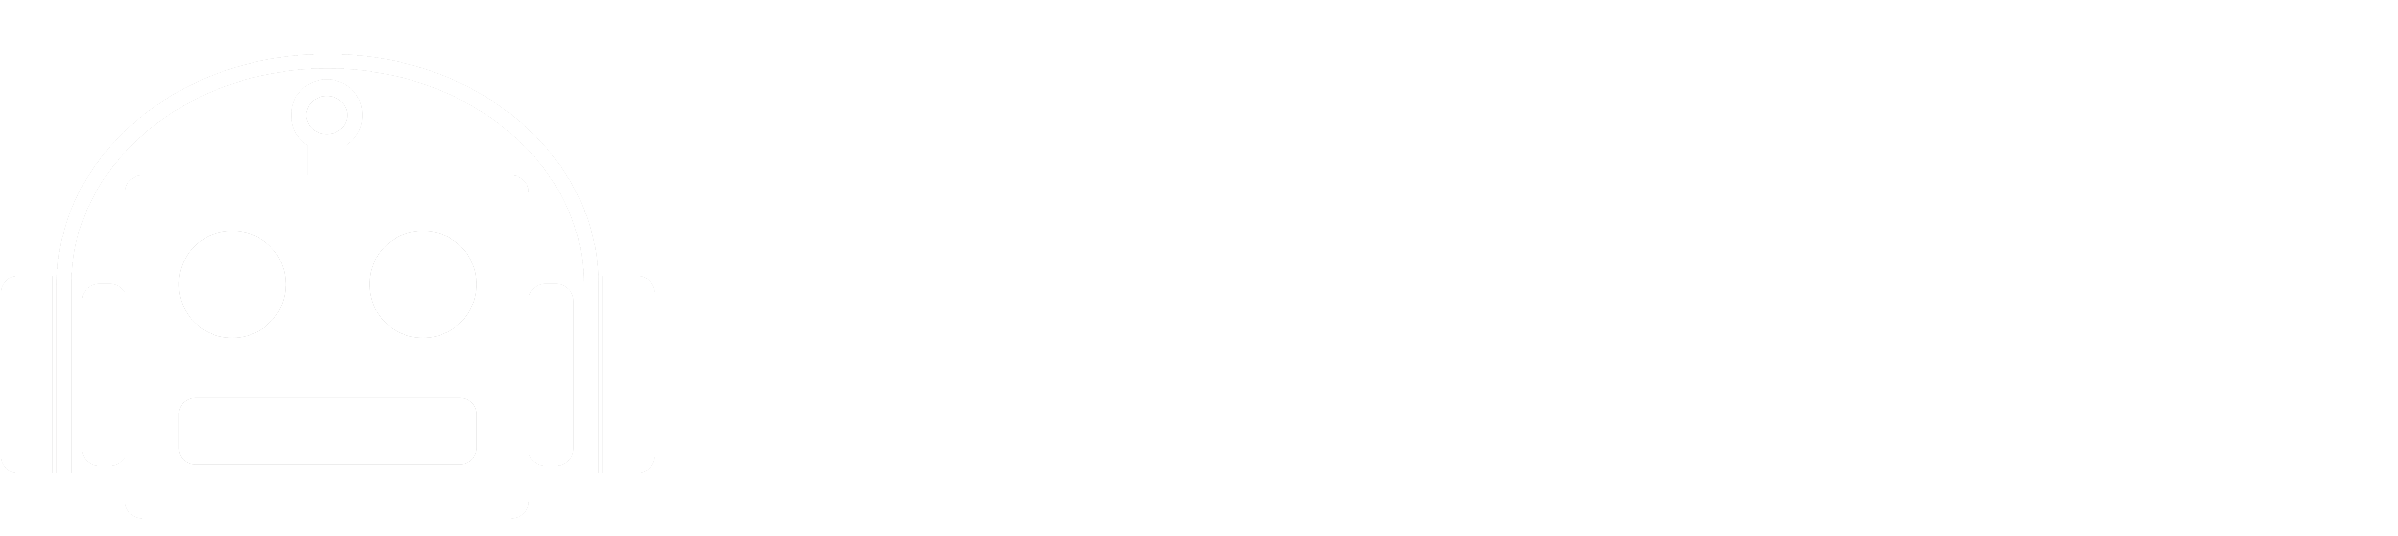 Amplified Events banner full 2 white.png